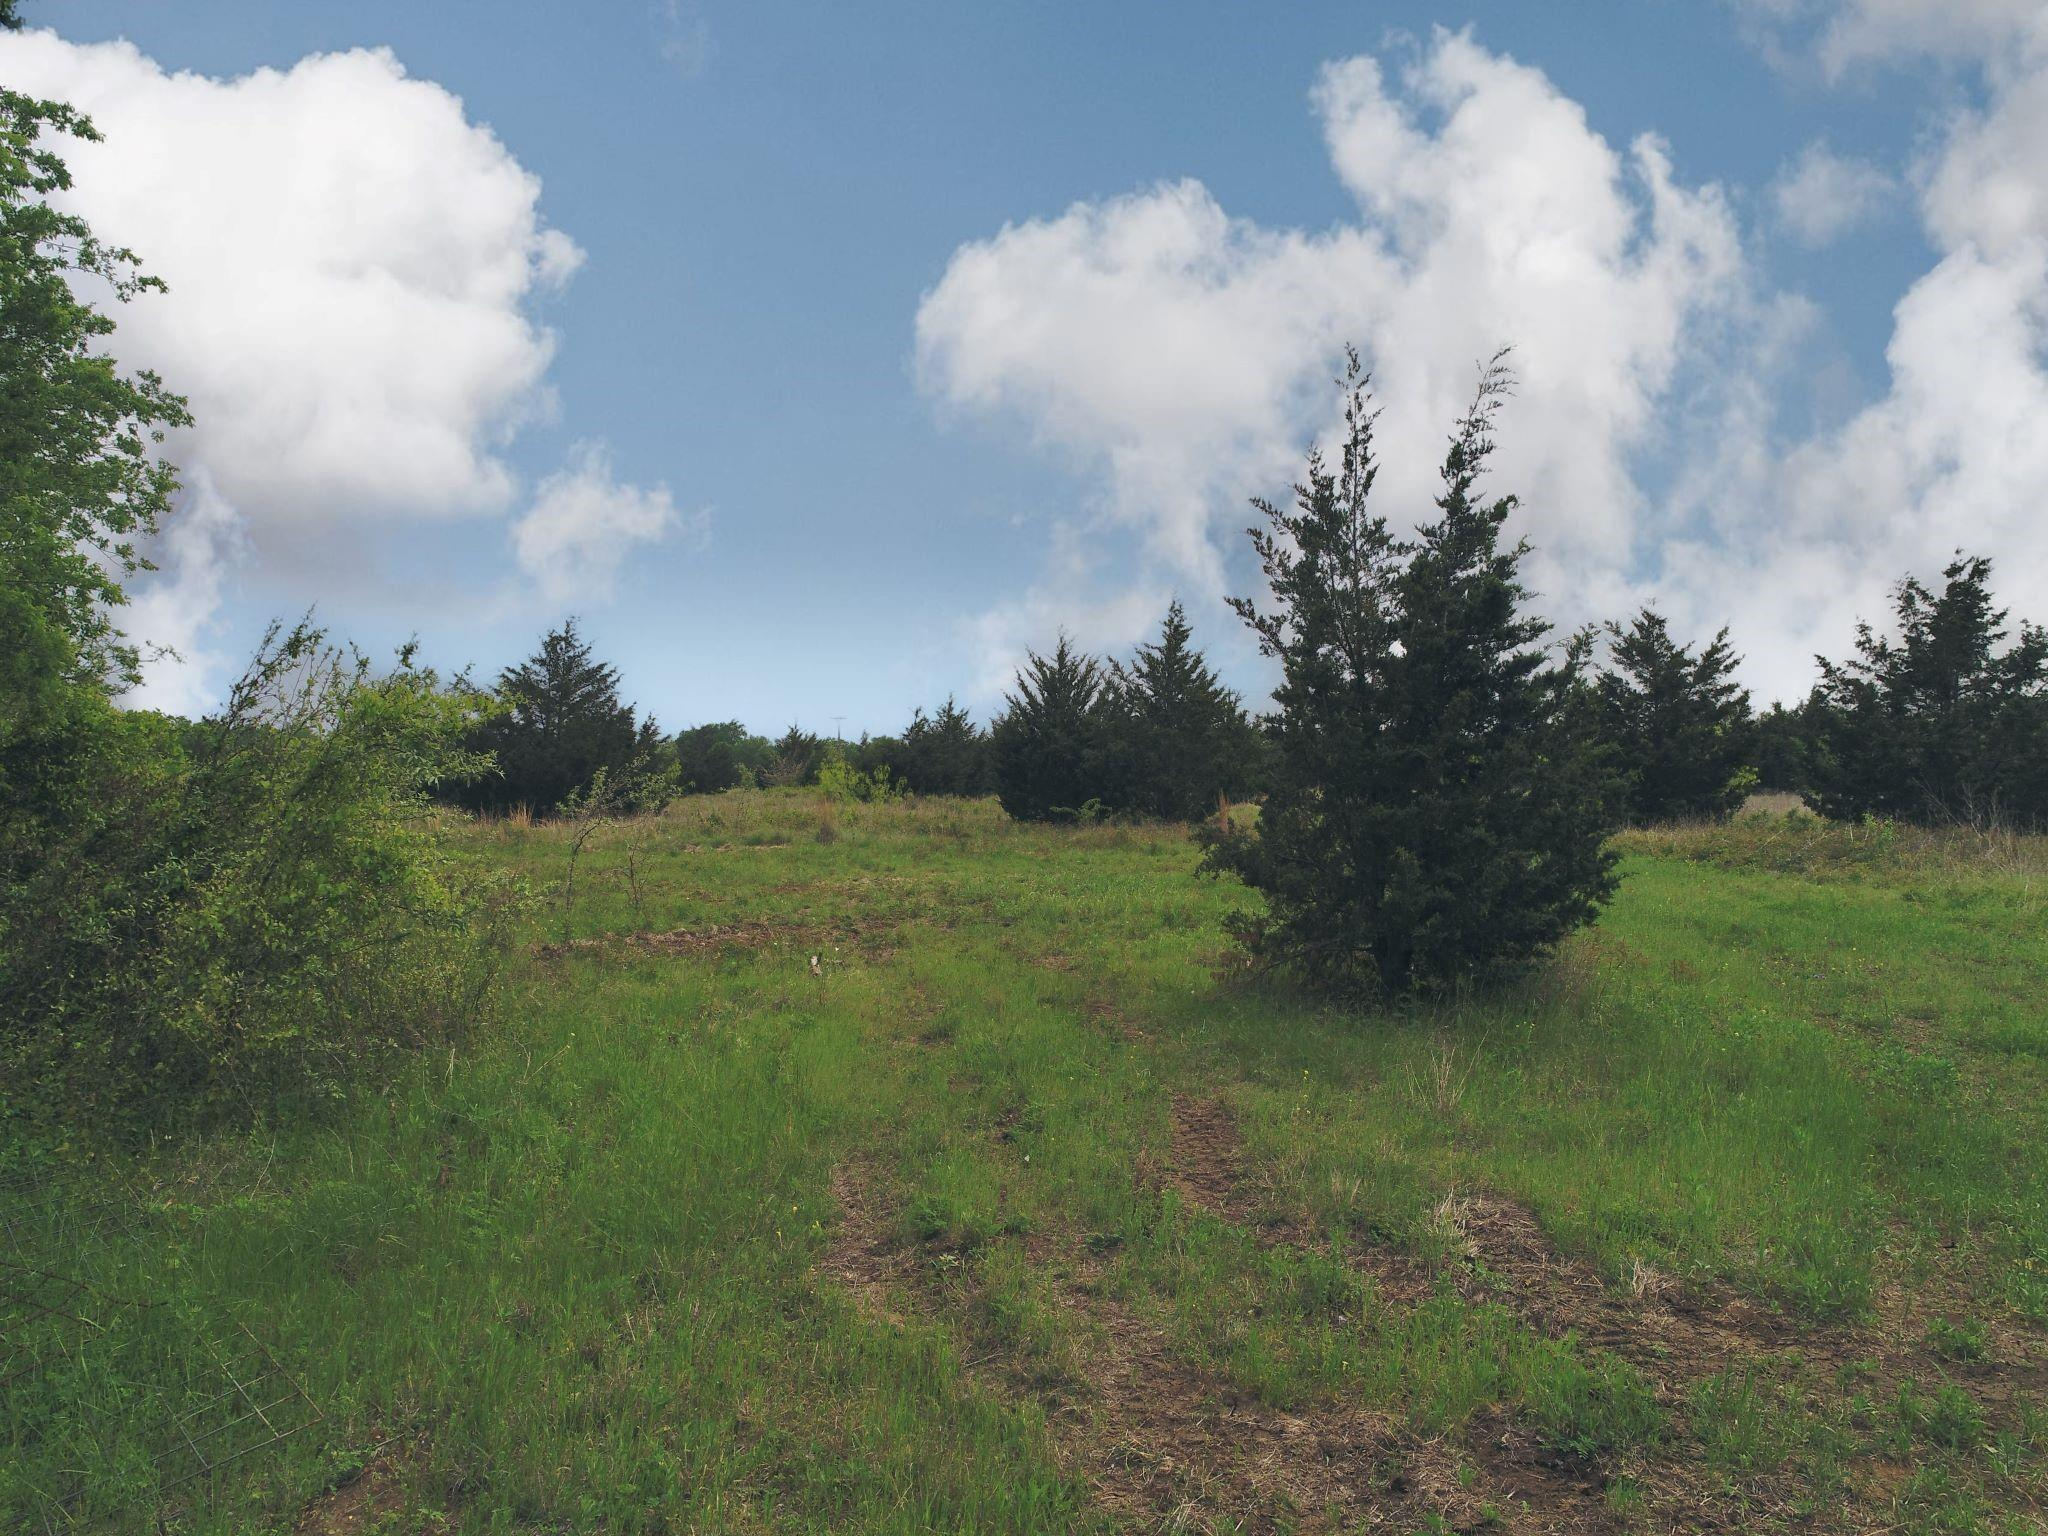 Tbd-tract 3 Cr 315 Property Photo